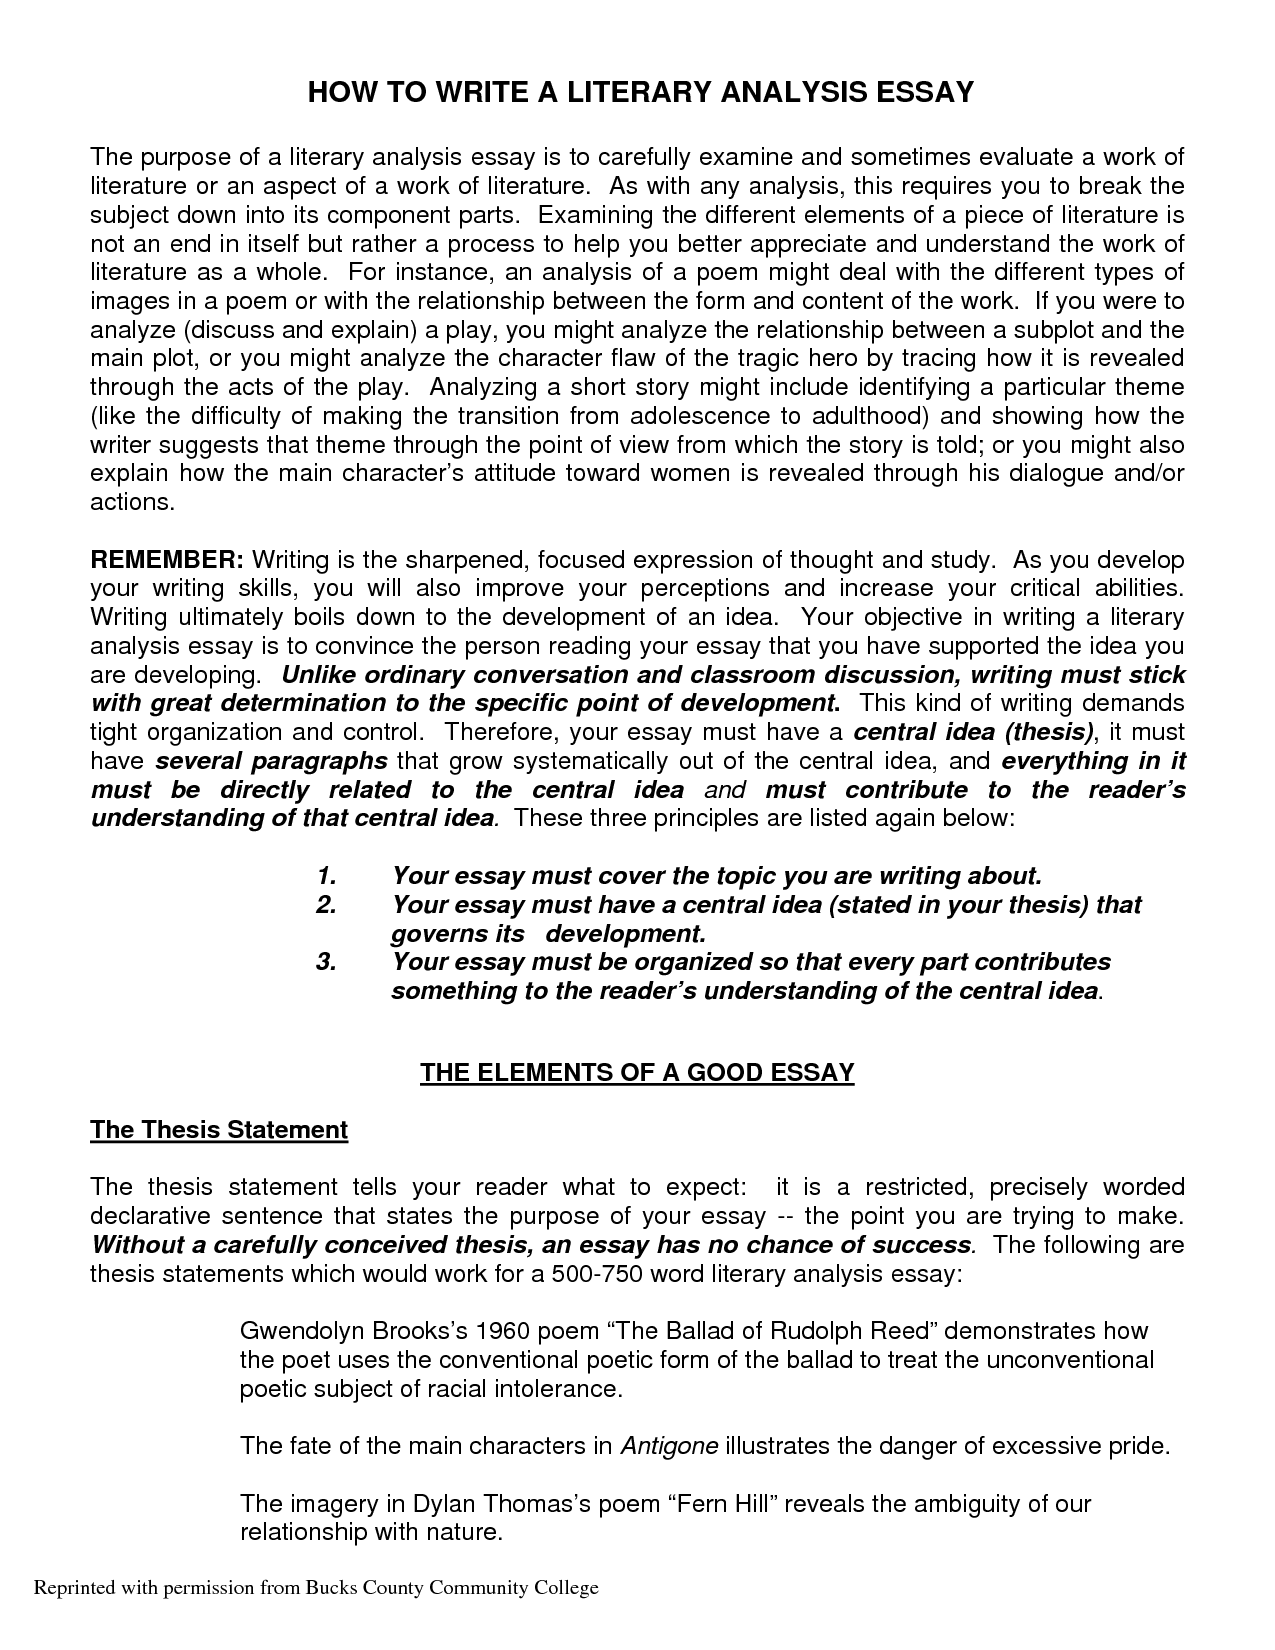 003 Awesome Collection Of Ideas Example Literary Essaylso Format Sample Huanyii Fancy Critical How To Write Formidable A Essay Good English Literature Introduction Conclusion Grade 4 Full